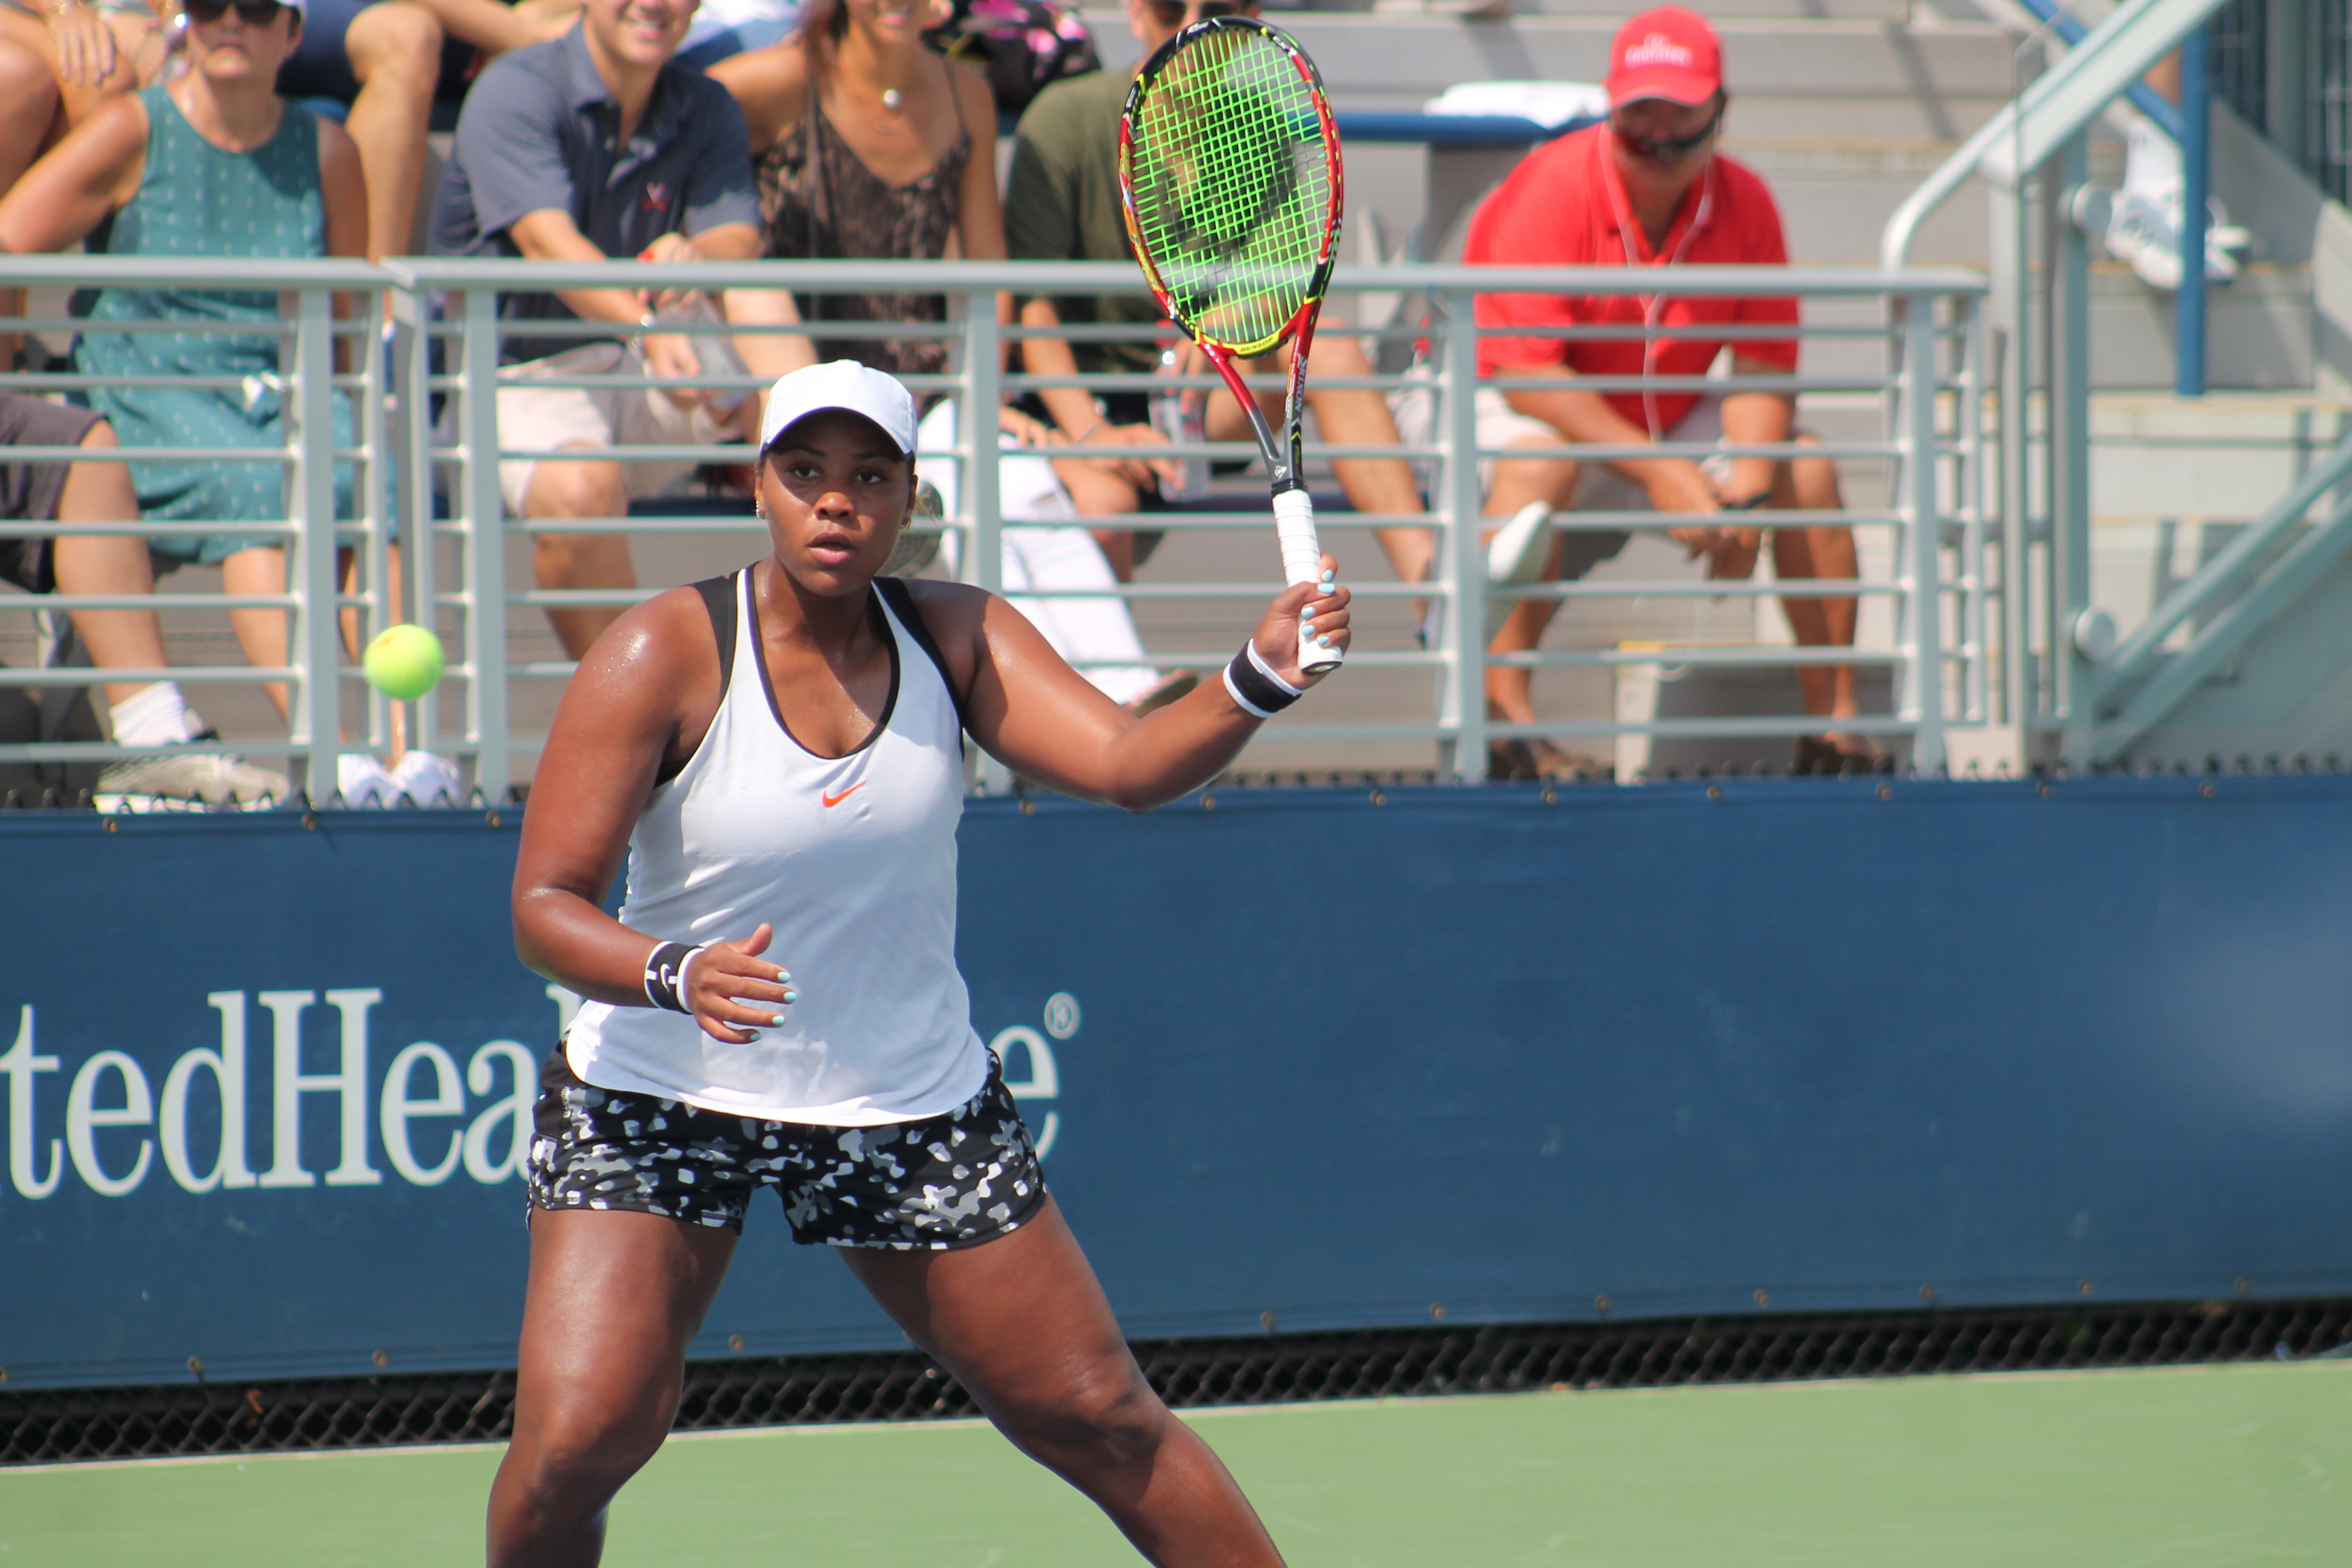 American Taylor Townsend outlasted her compatriot, Amanda Anisimova, 3-6, 6-4, 6-3, in Tuesday afternoon action at the U.S. Open